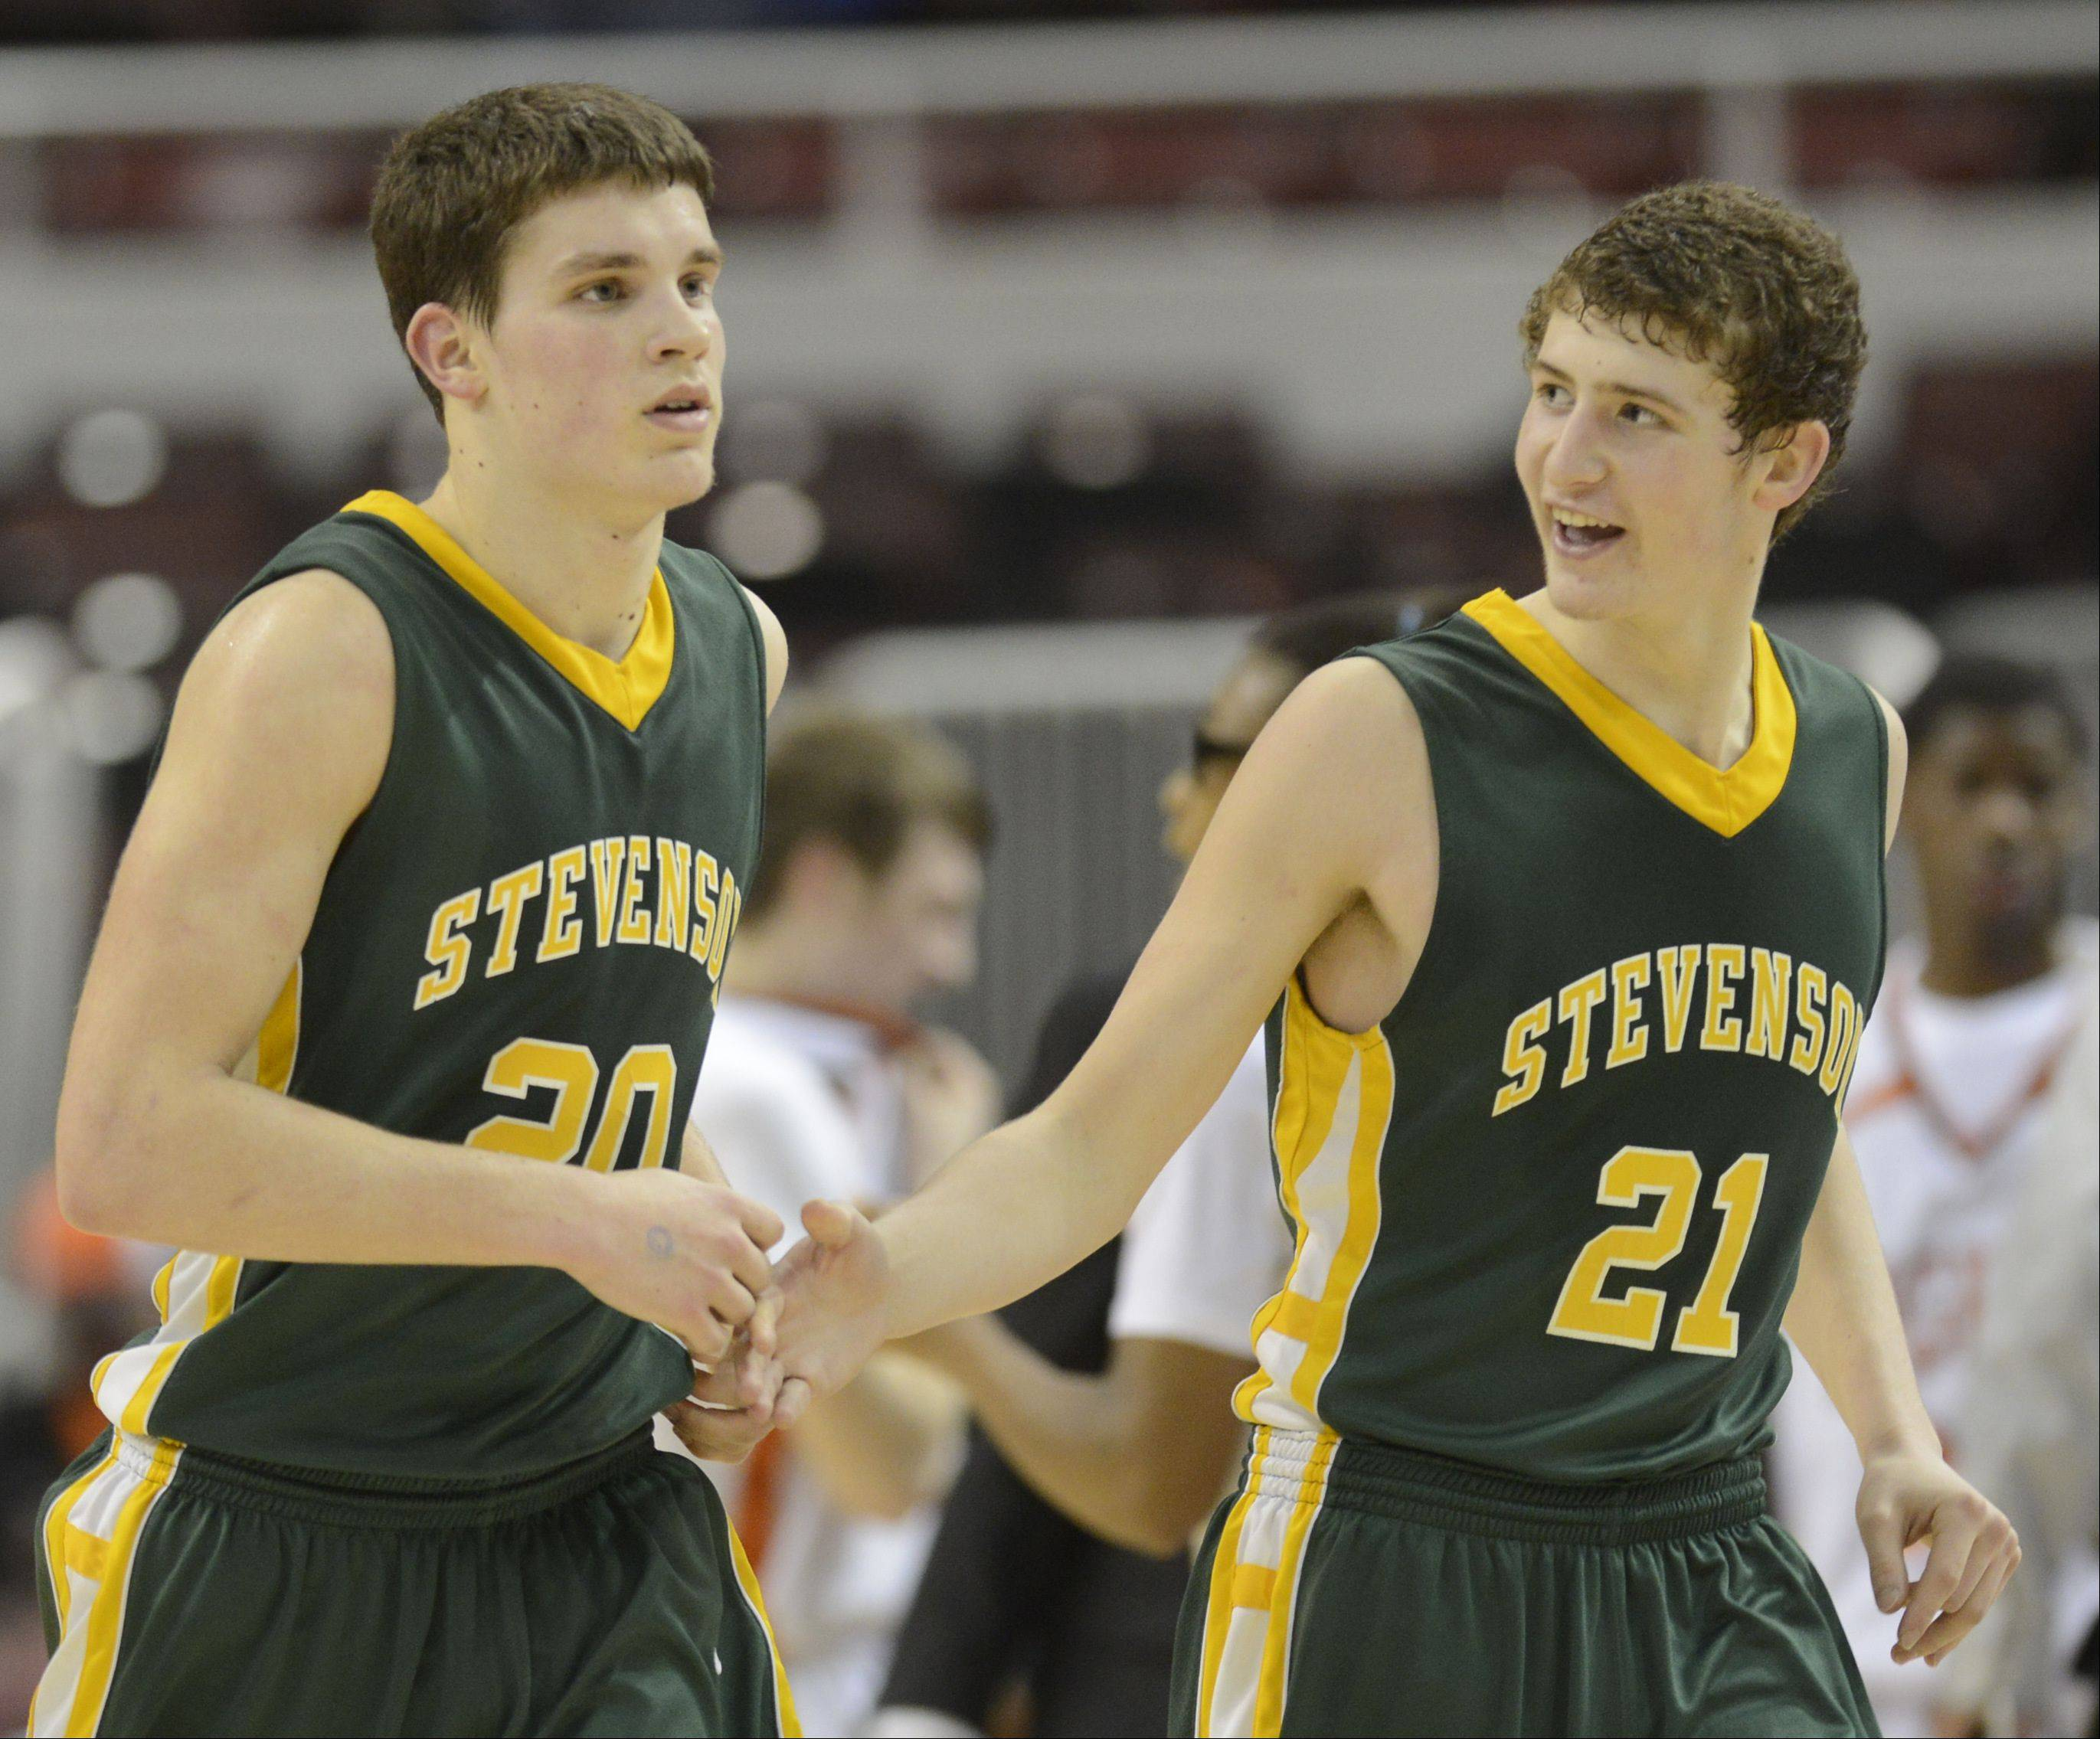 Images from the Stevenson vs. Edwardsville Class 4A state semifinal boys basketball game on Friday, March 15 at Carver Arena in Peoria.